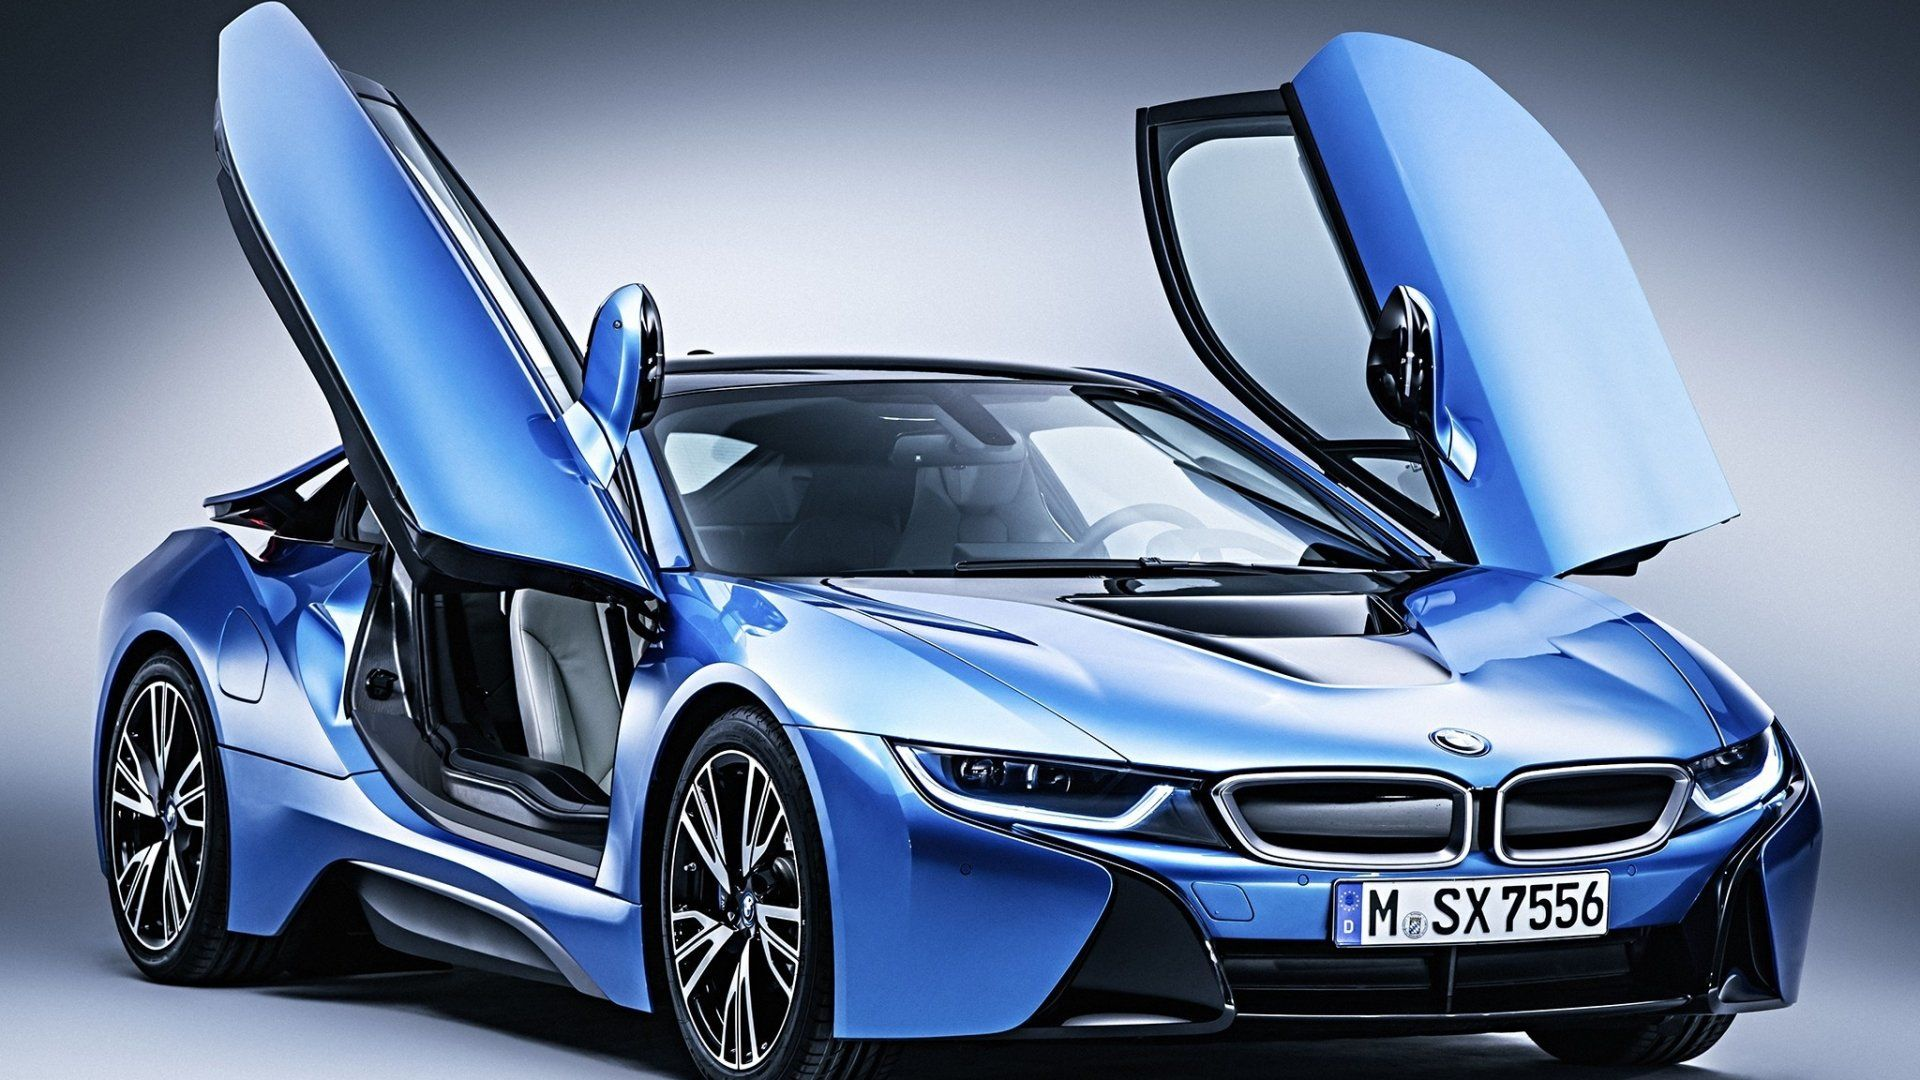 Bmw I8 Hybrid Supercar Wallpapers For Desktop 1920x1080 Wallpaper Bmw I8 Bmw Car Models Bmw